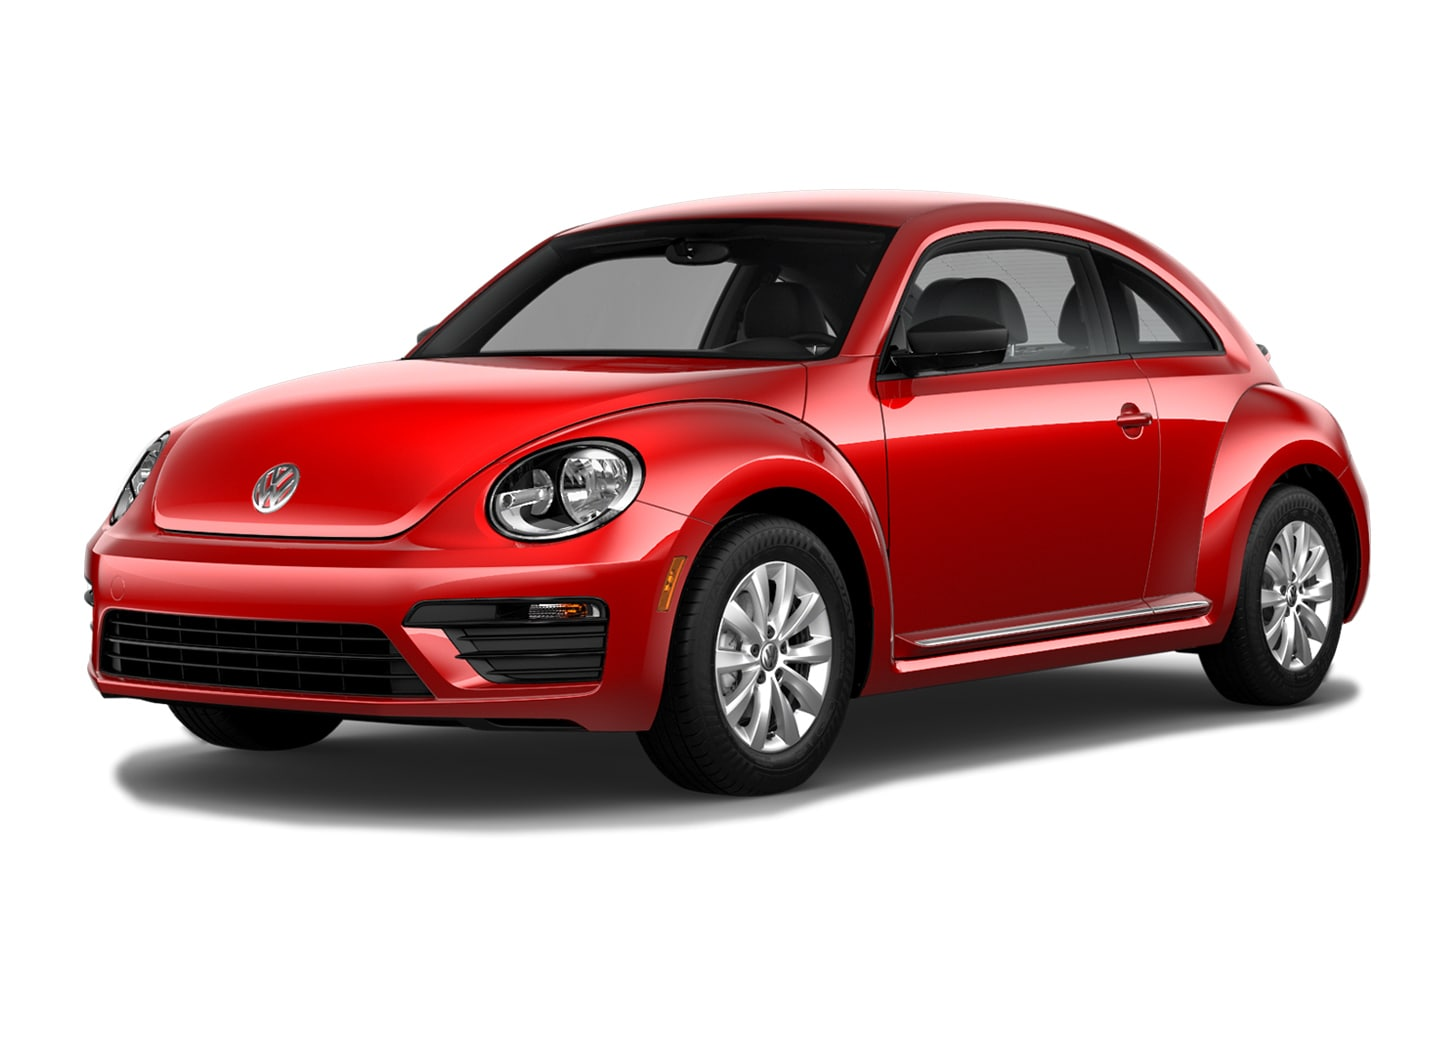 2019 Volkswagen Beetle Hatchback Digital Showroom | Piazza Volkswagen of Langhorne